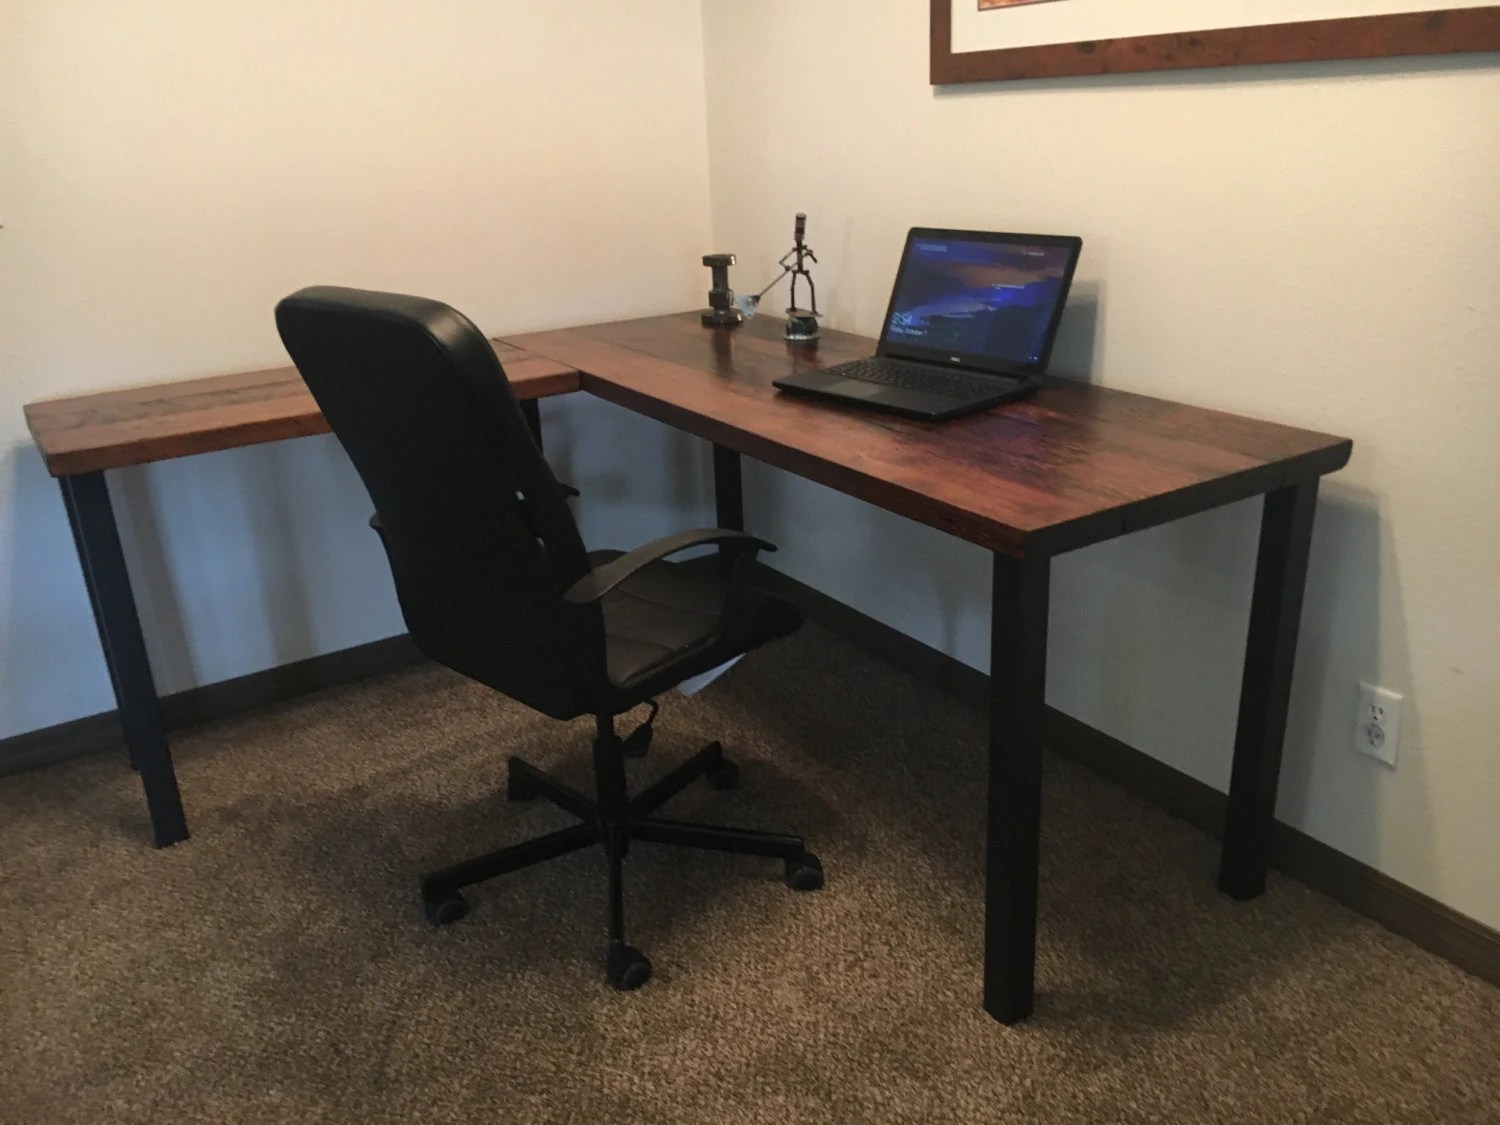 Executive L Shaped Desk L Shaped Desk Reclaimed Wood Desk Old Rustic Desk Industrial Desk Executive Desk Wood And Metal Desk Corner Desk Post Leg Desk